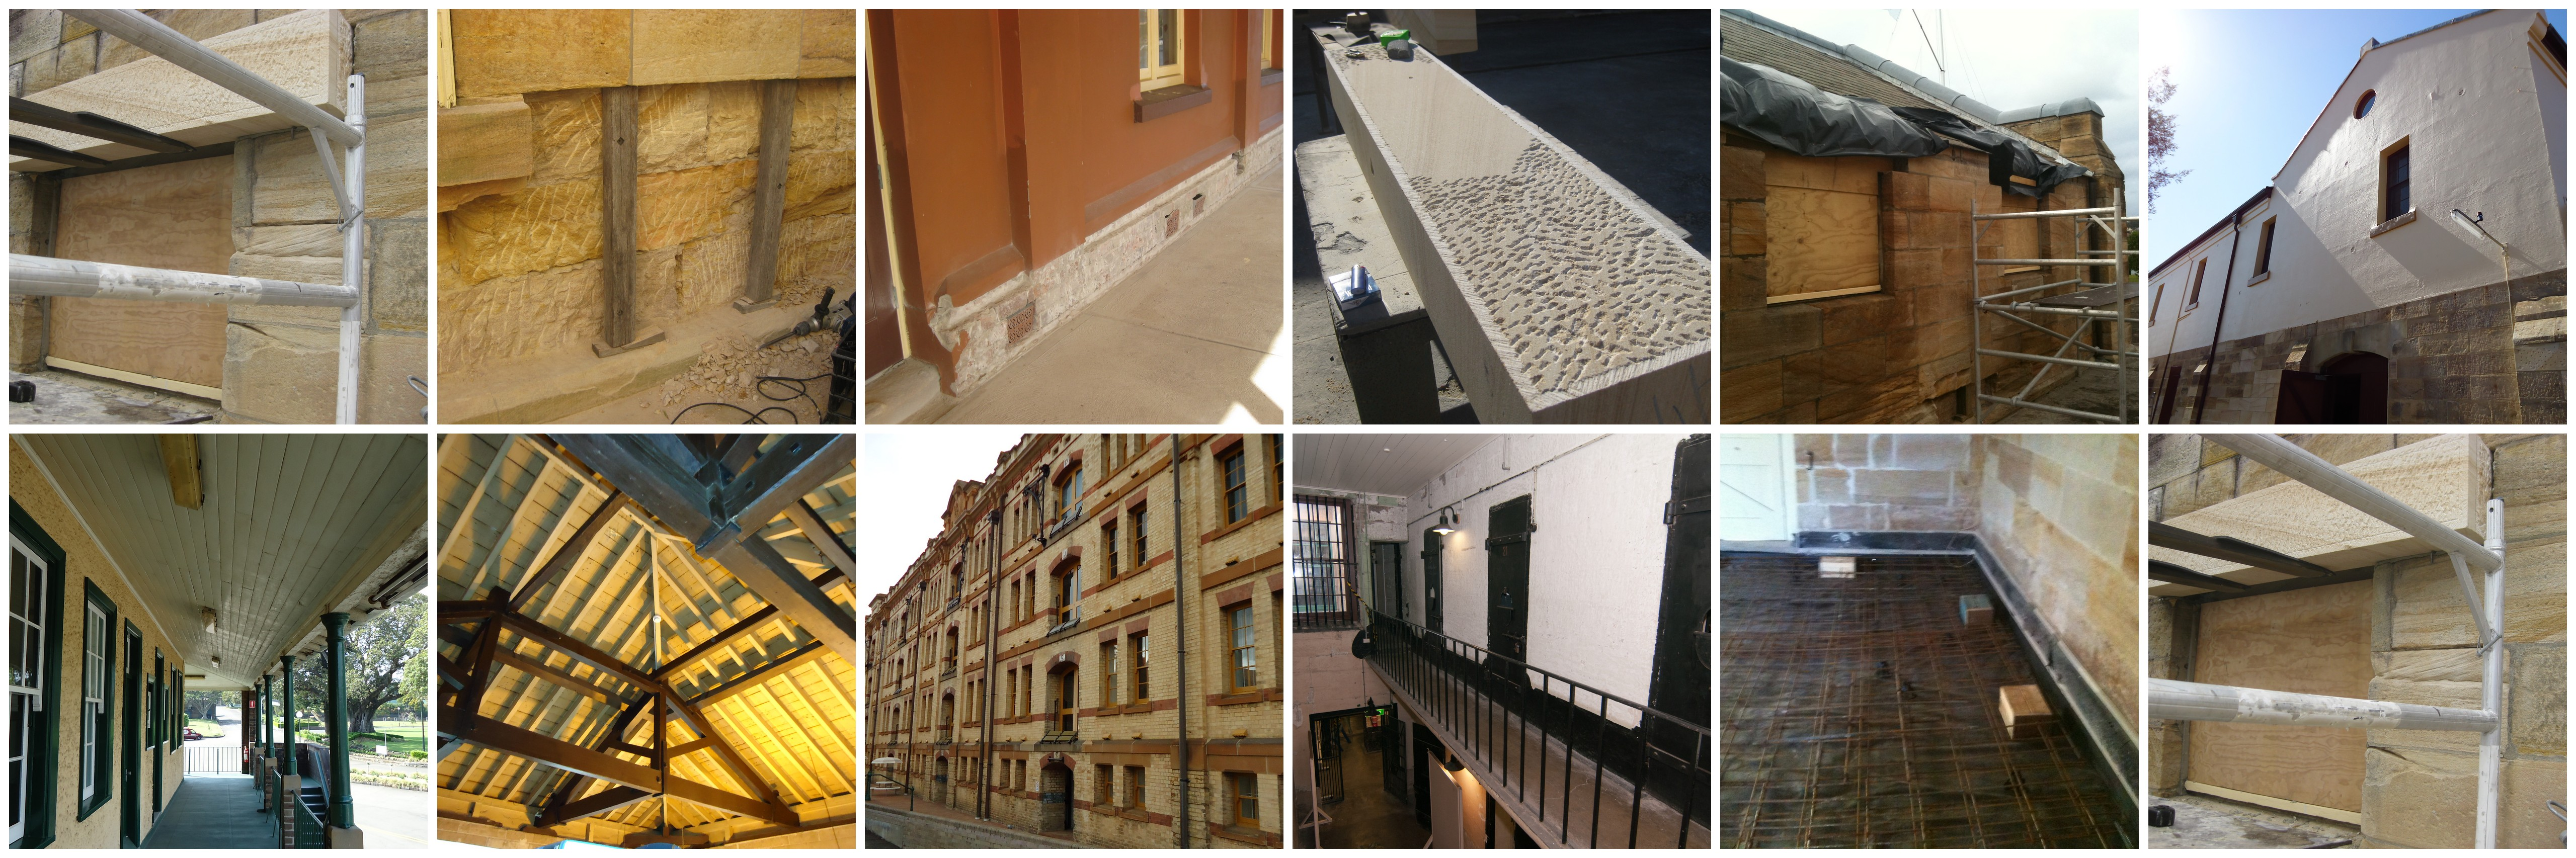 heritage puch construction building pcb s pedigree in heritage restorations is one that is underwritten proven success skill and attention to detail